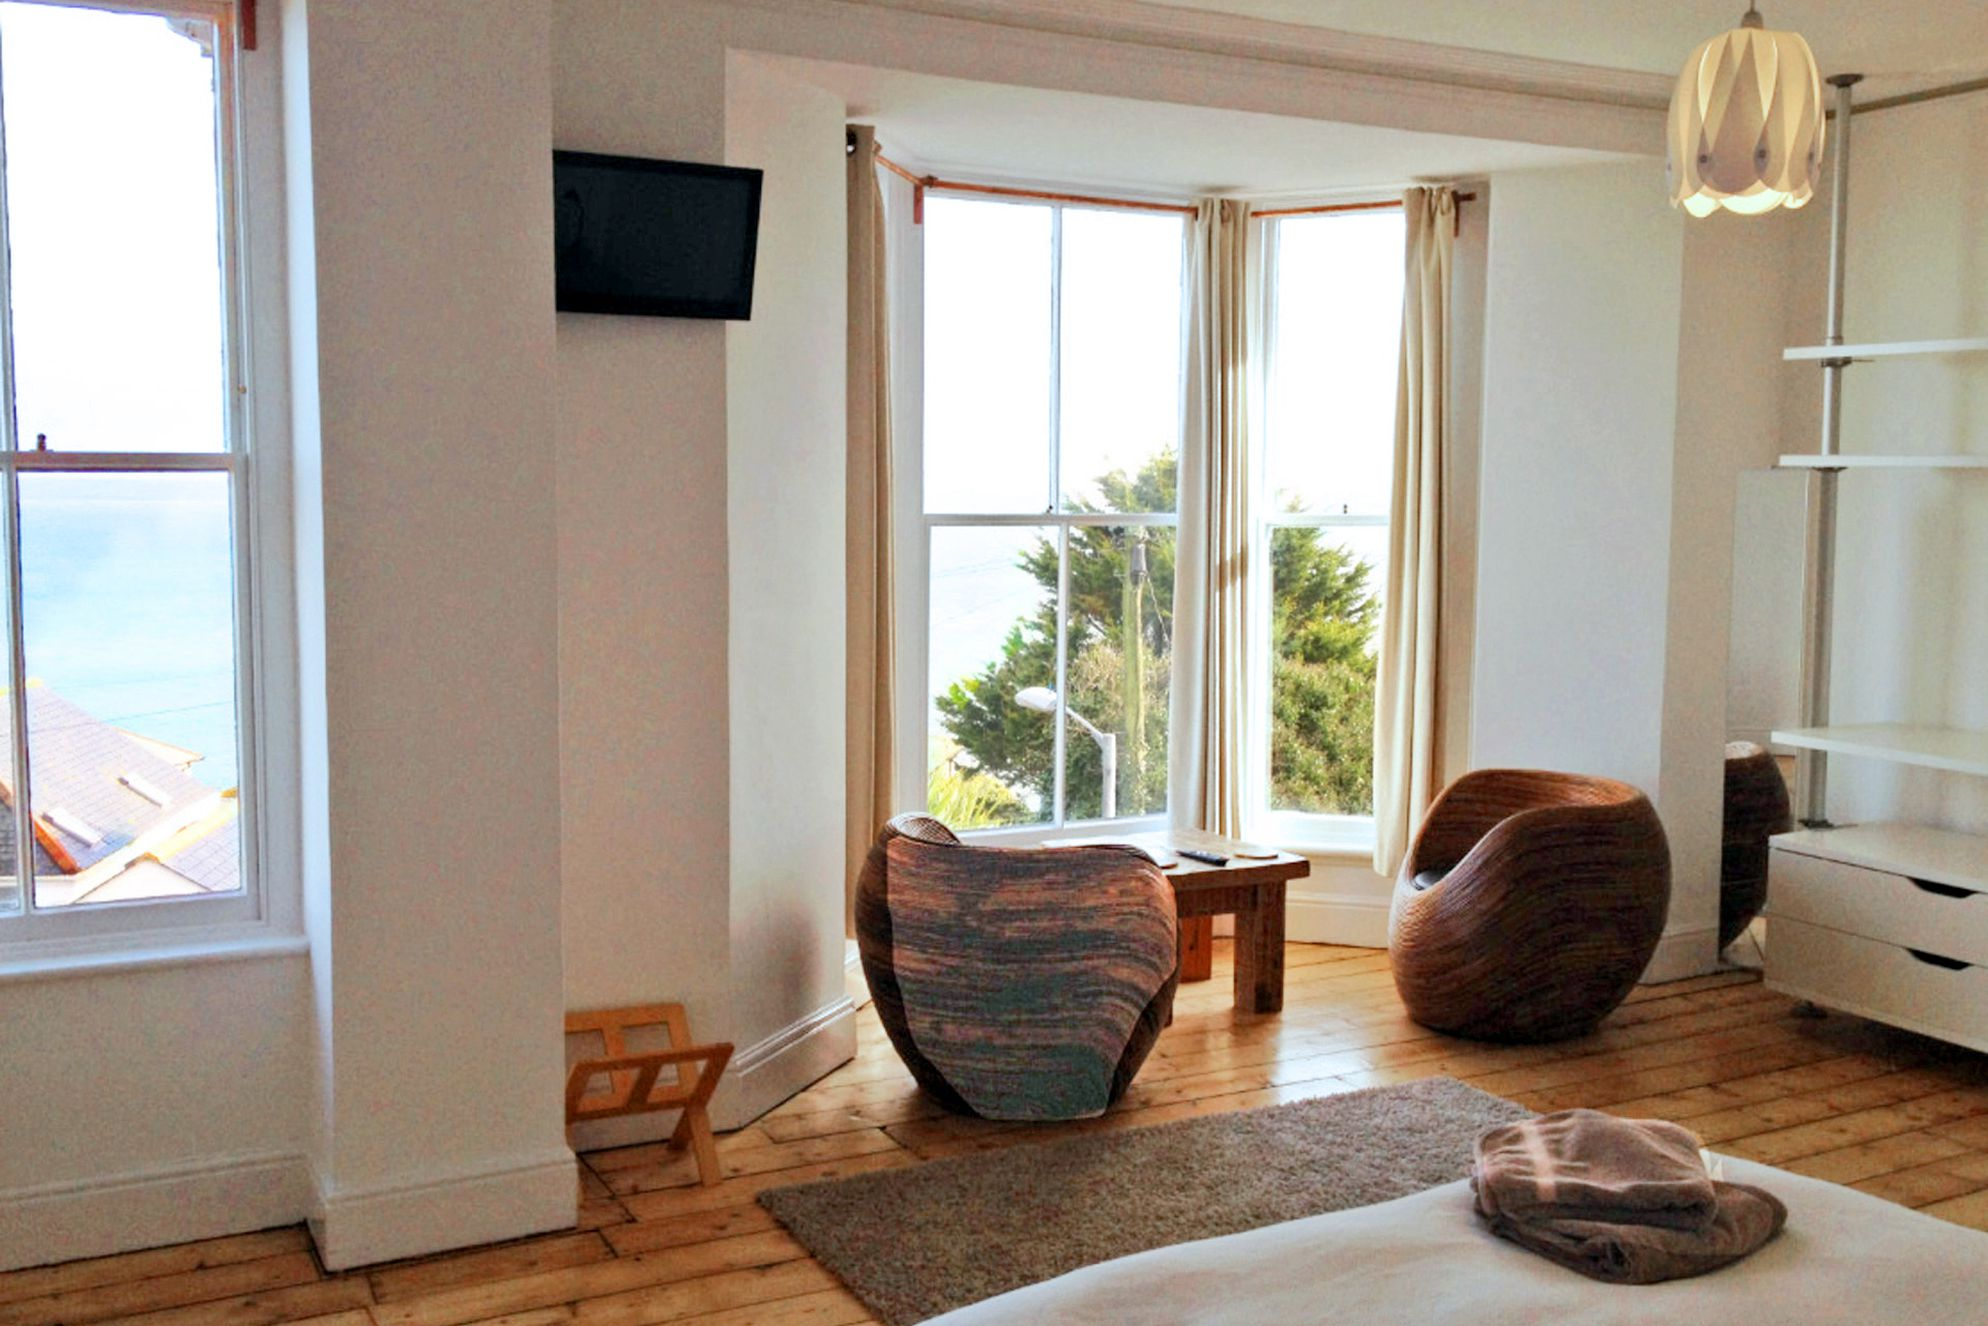 Double bedroom with seating area looking out of the bay window